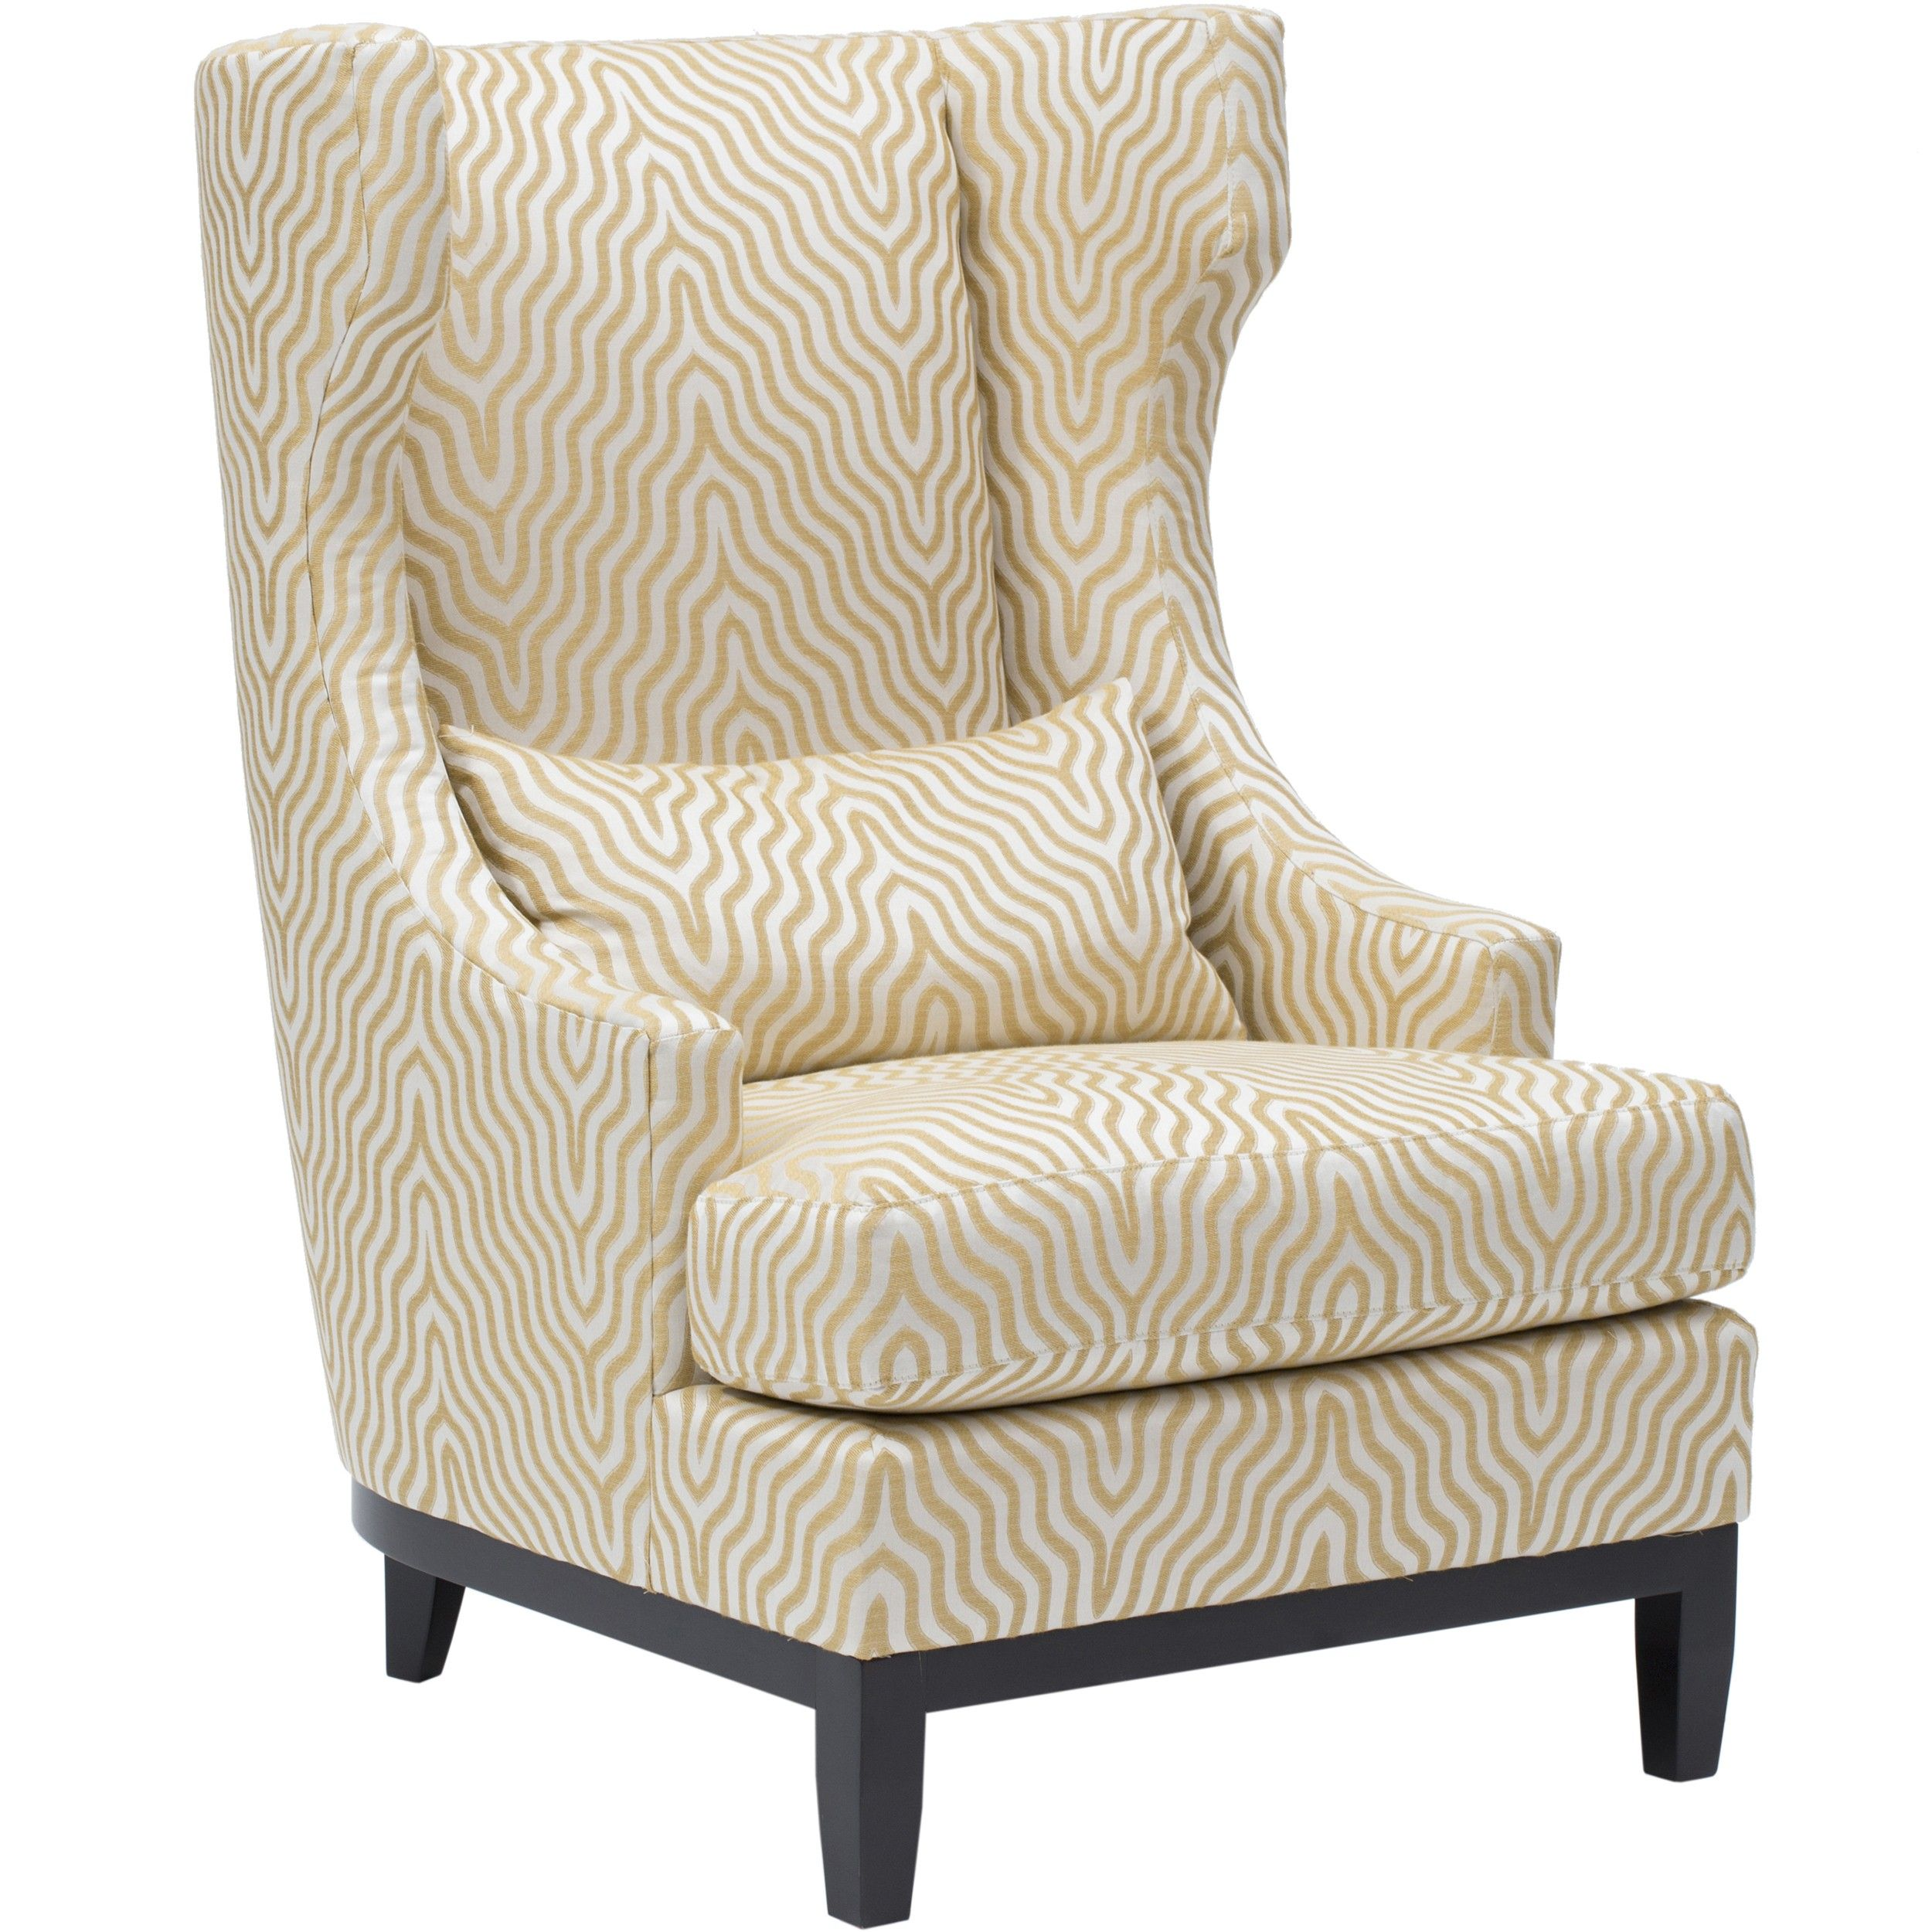 Pascal chair yellow furniture chairs fabric best sellers made in the usa furniture room ideas living room sea glass